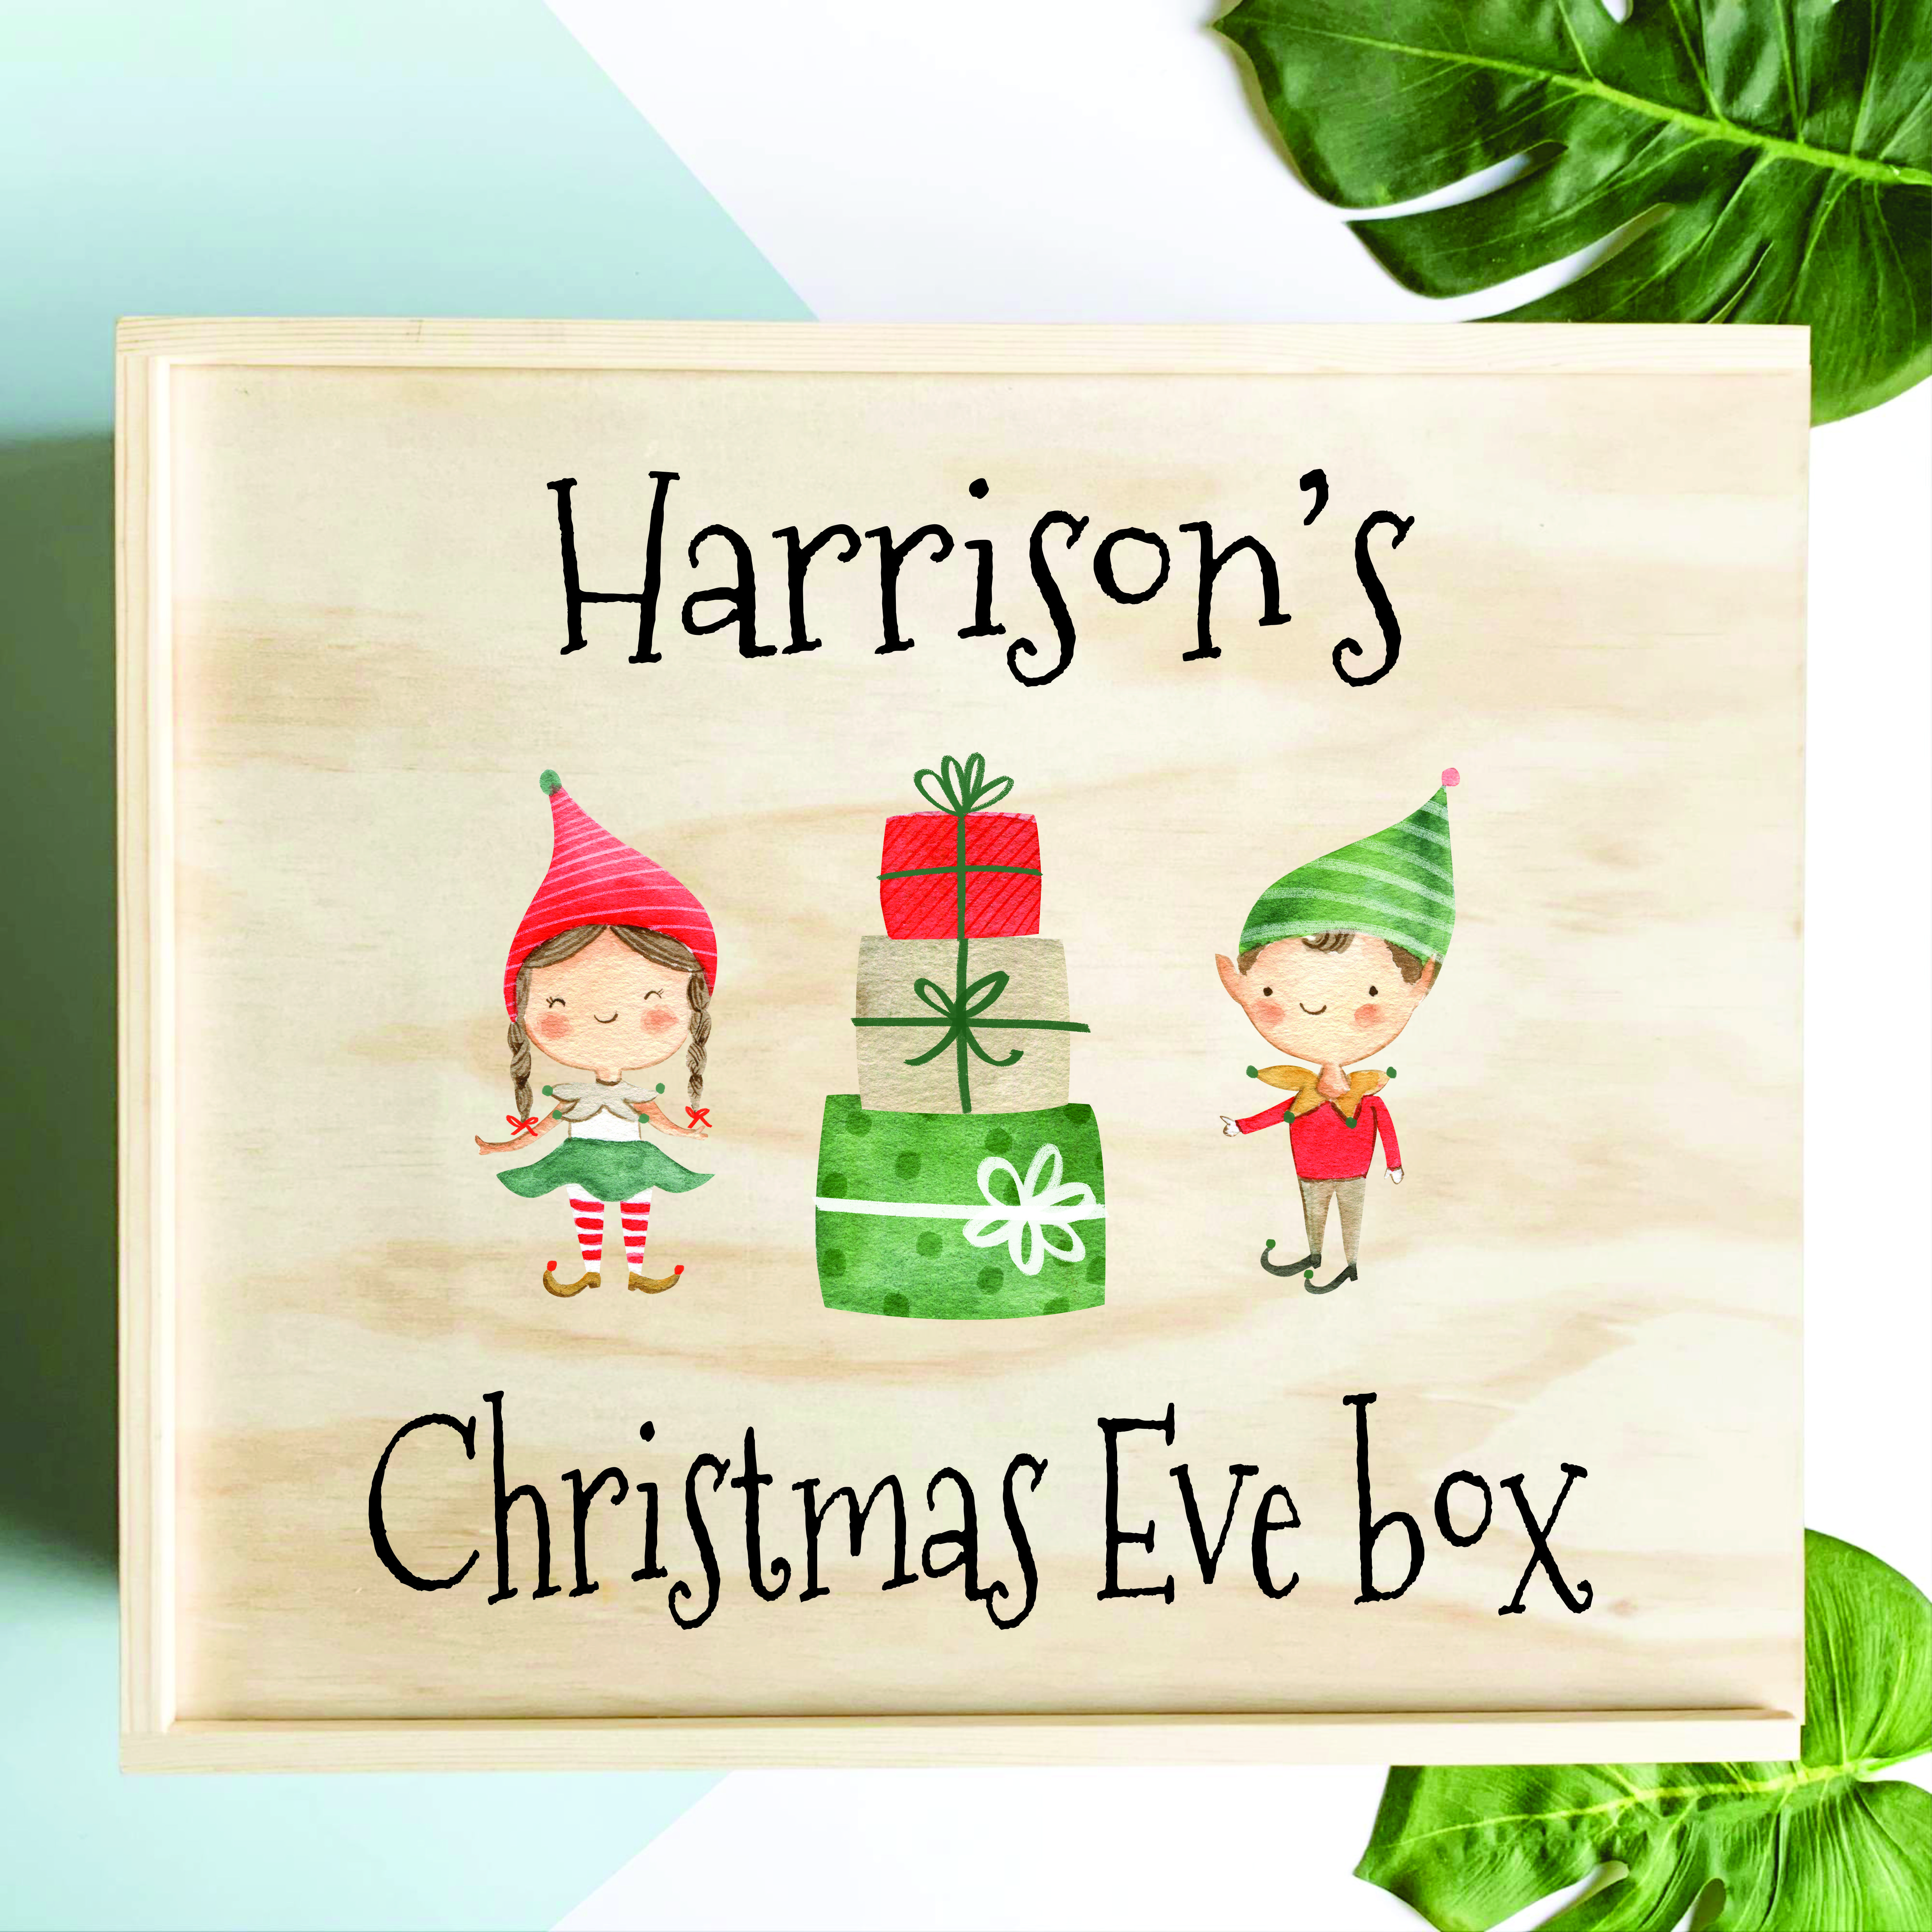 Christmas-eve-box-australia-personalised-christmas-eve-box-personalised-xmas-eve-boxes